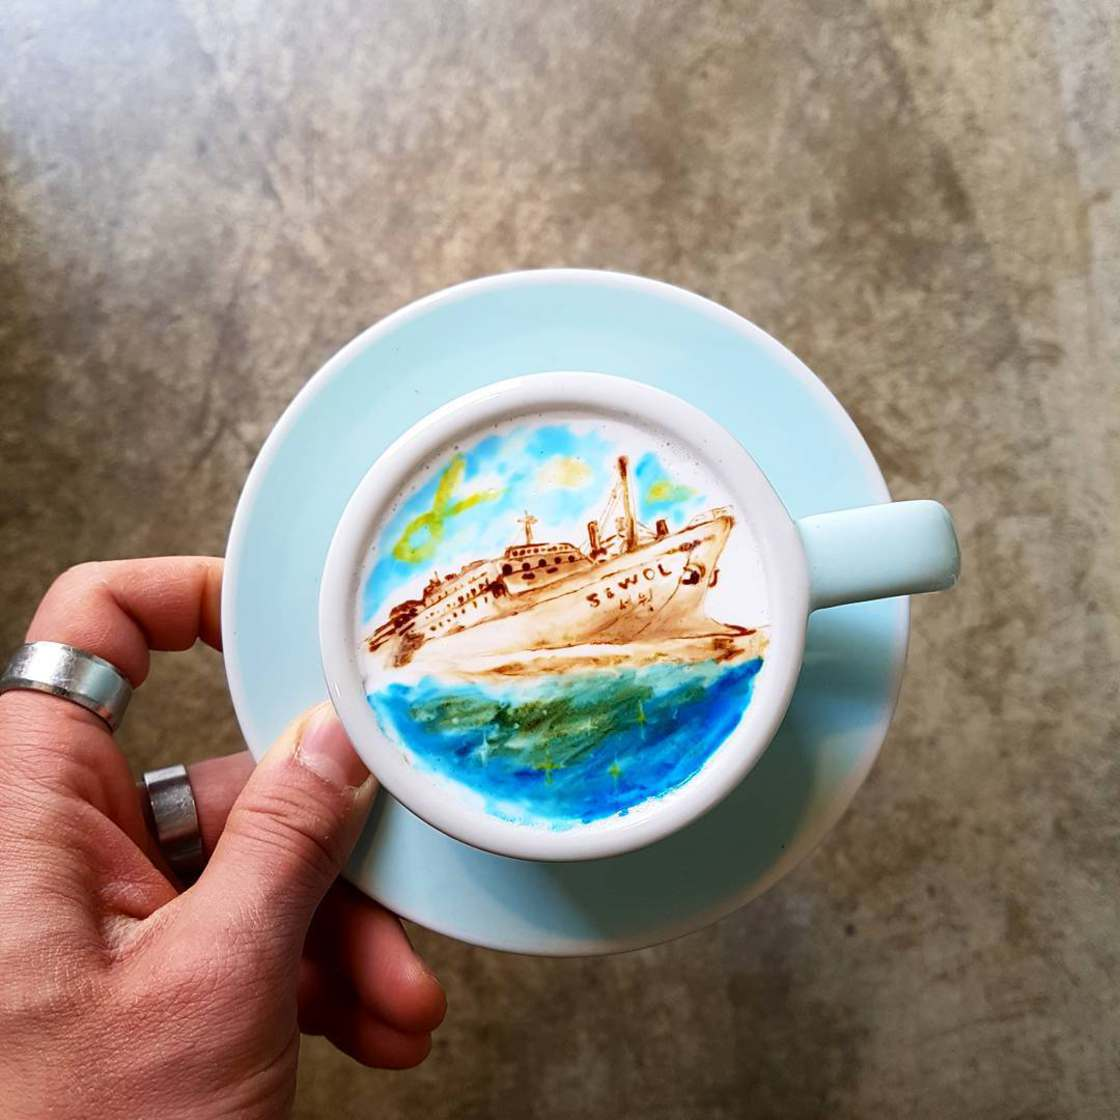 Art On Coffee - Barista creates impressive art on your coffee foam